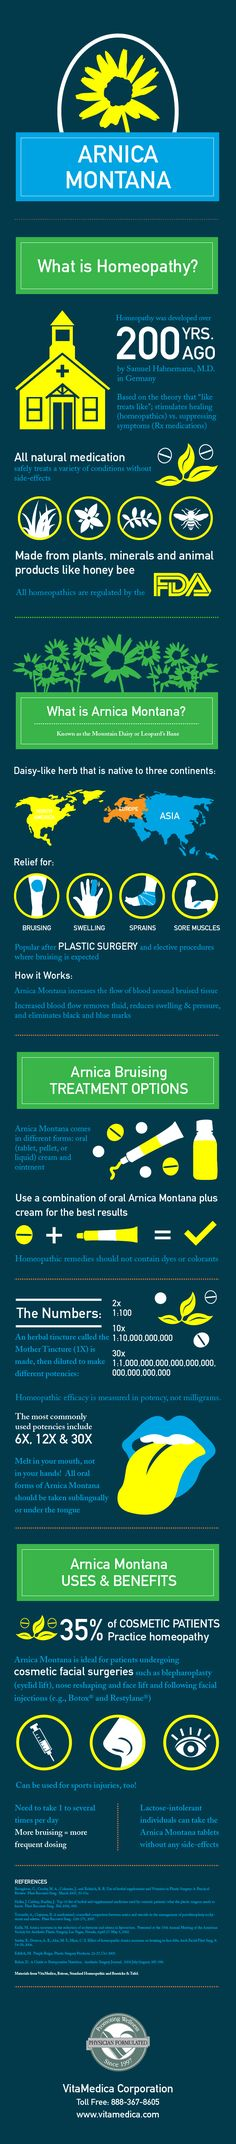 Acupressure Treatment - Are you worried that you may experience bruising after plastic surgery? Find out if the natural bruise treatment Arnica Montana is right for you. Holistic Remedies, Herbal Remedies, Natural Remedies, Arnica Montana, Health And Wellness, Health Care, Acupuncture Benefits, Coconut Oil For Teeth, Acupressure Treatment